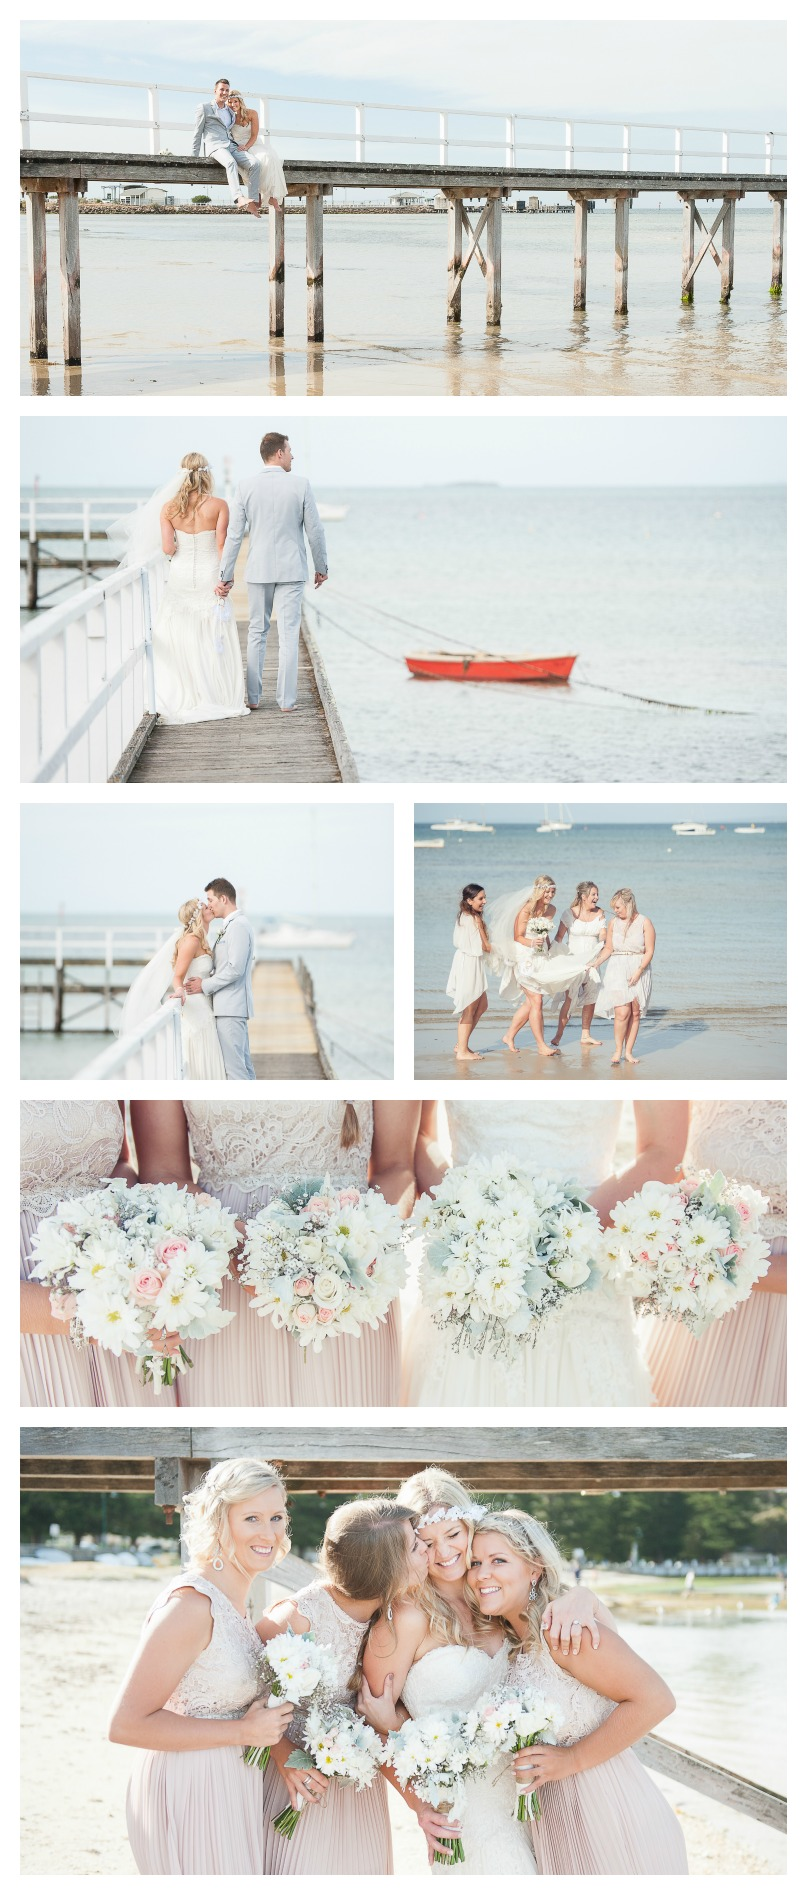 sorrento-wedding sorrento-pier sorrento-wedding-photography